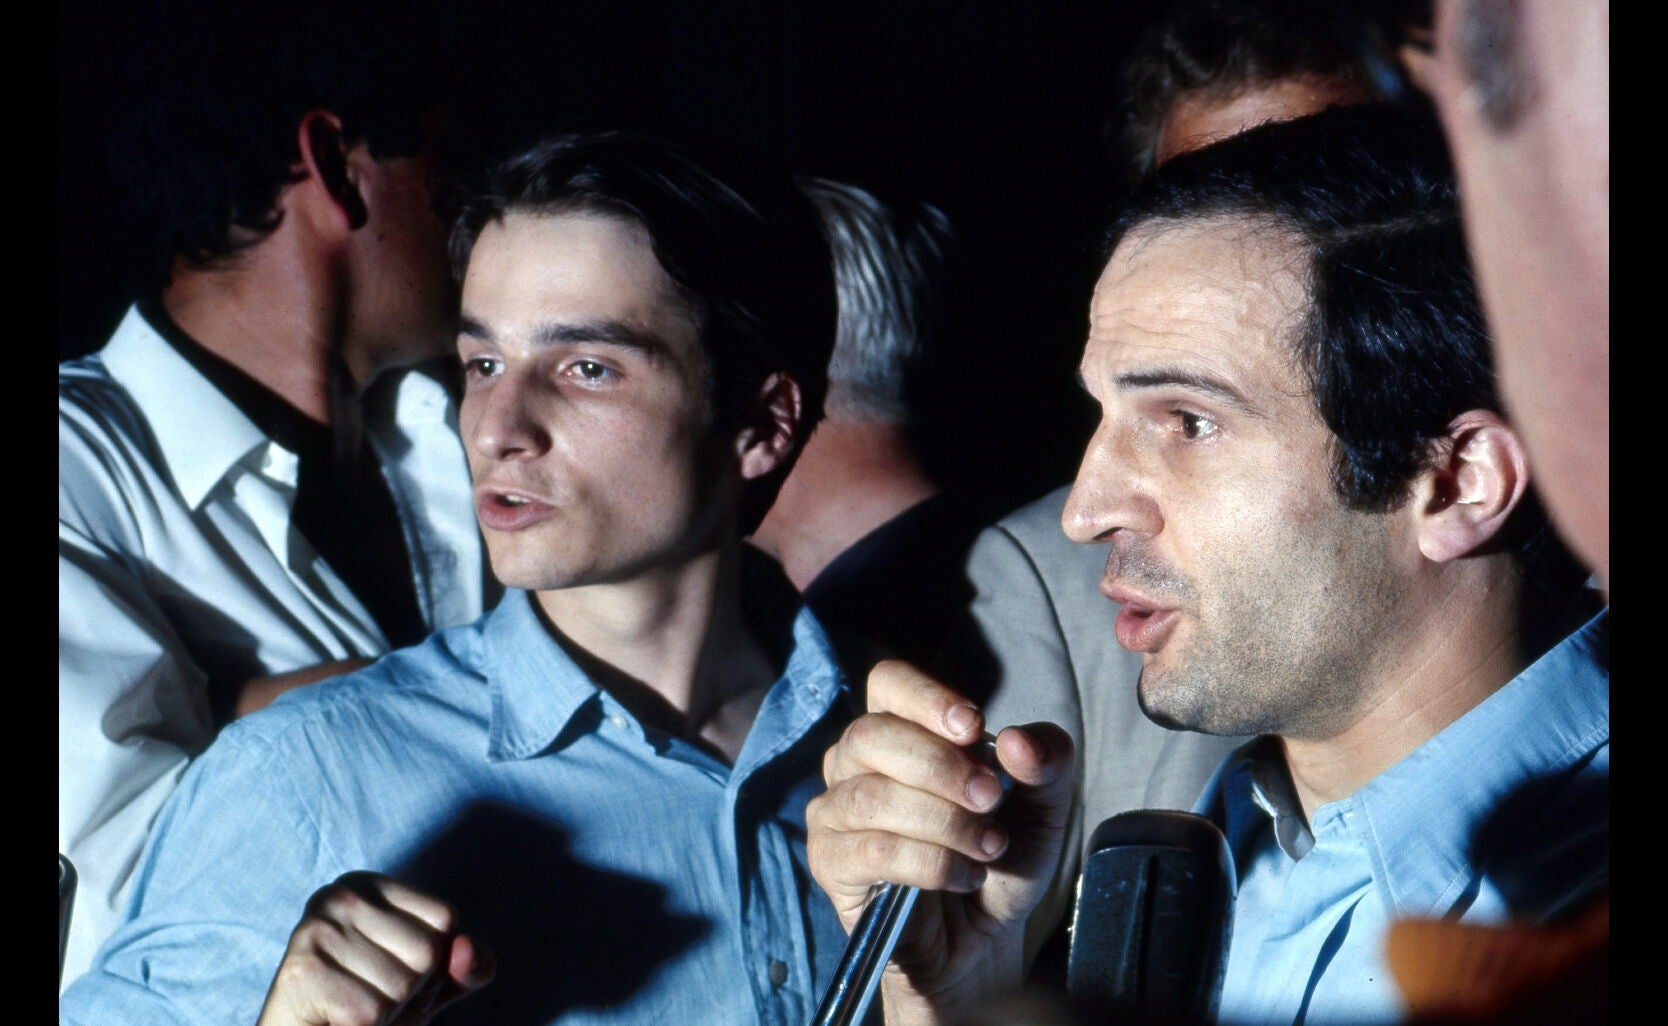 Jean Pierre Leaud and Fraçois TRuffaut protest at 21st Cannes Film Festival